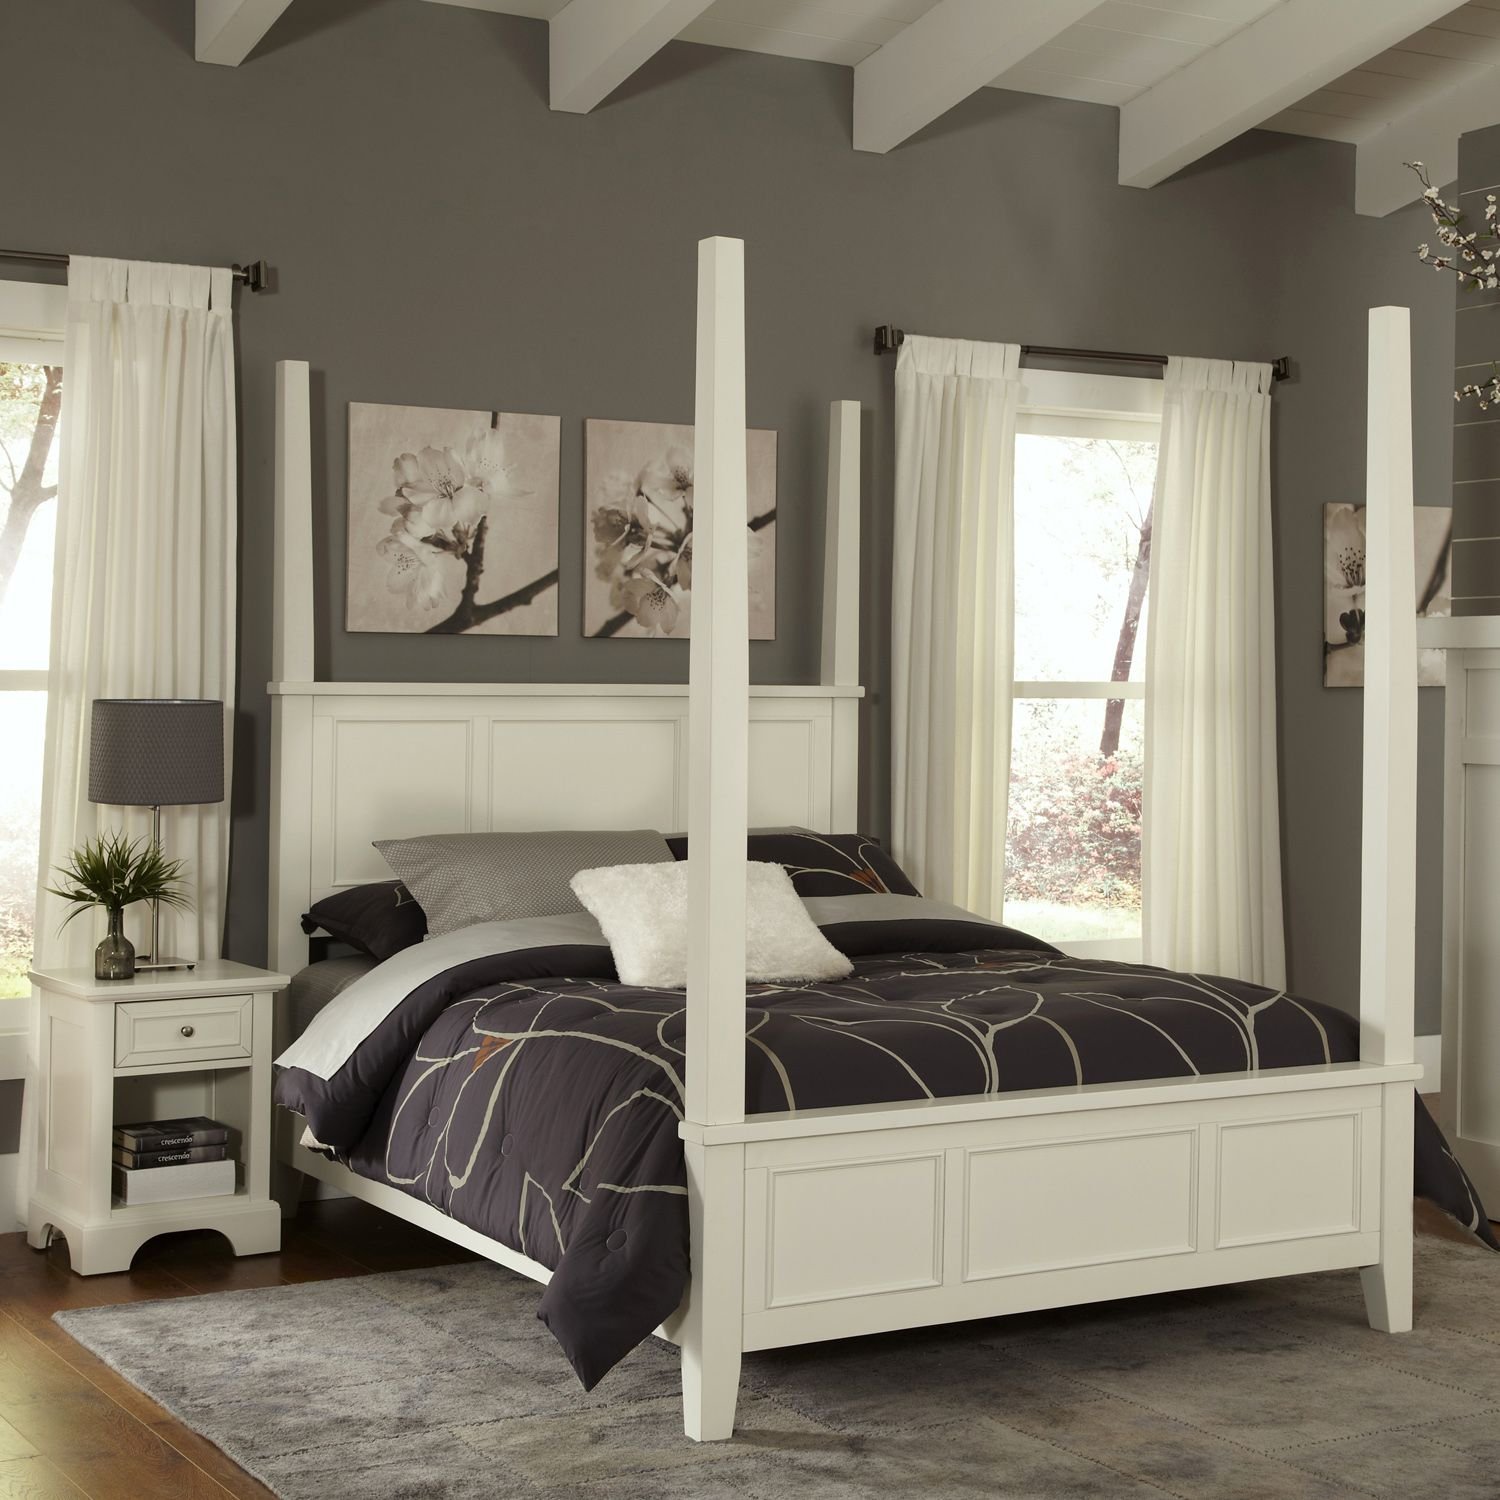 Cute Home Styles Naples piece King Four Post Bed u Nightstand Set